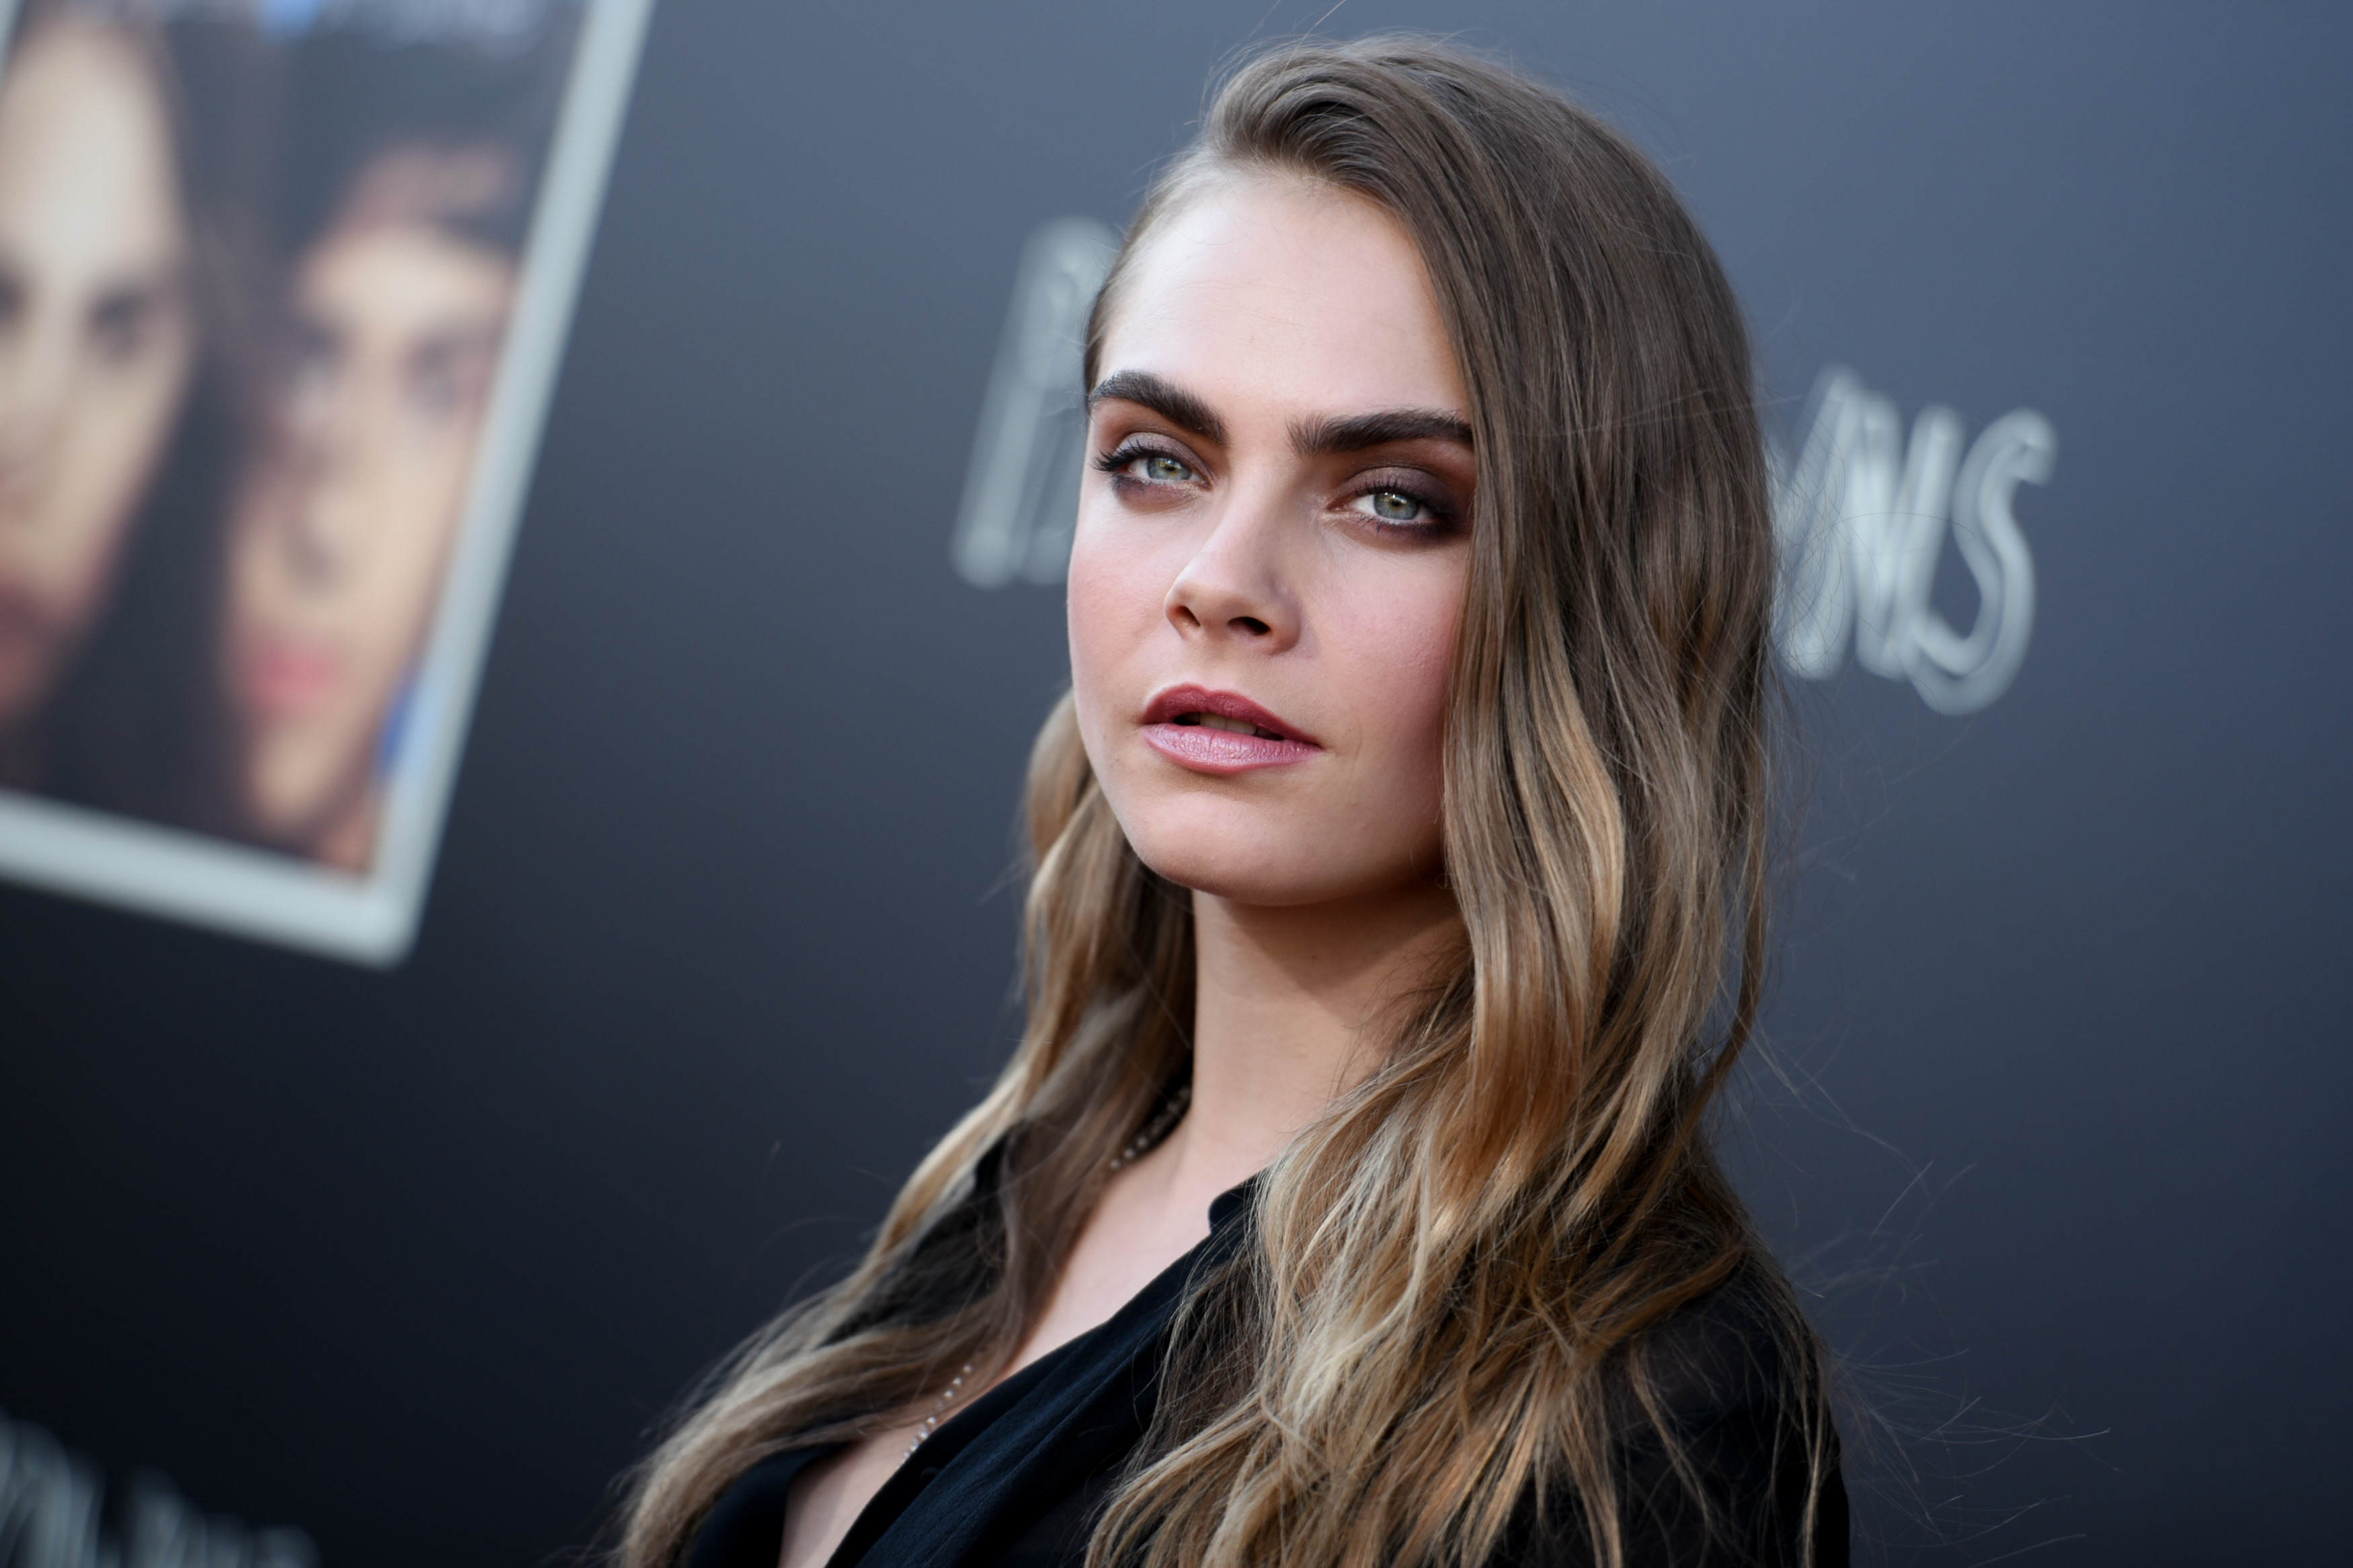 PA 23648325 Cara Delevingne Has Some Strong Words Against The Facebook Dislike Button